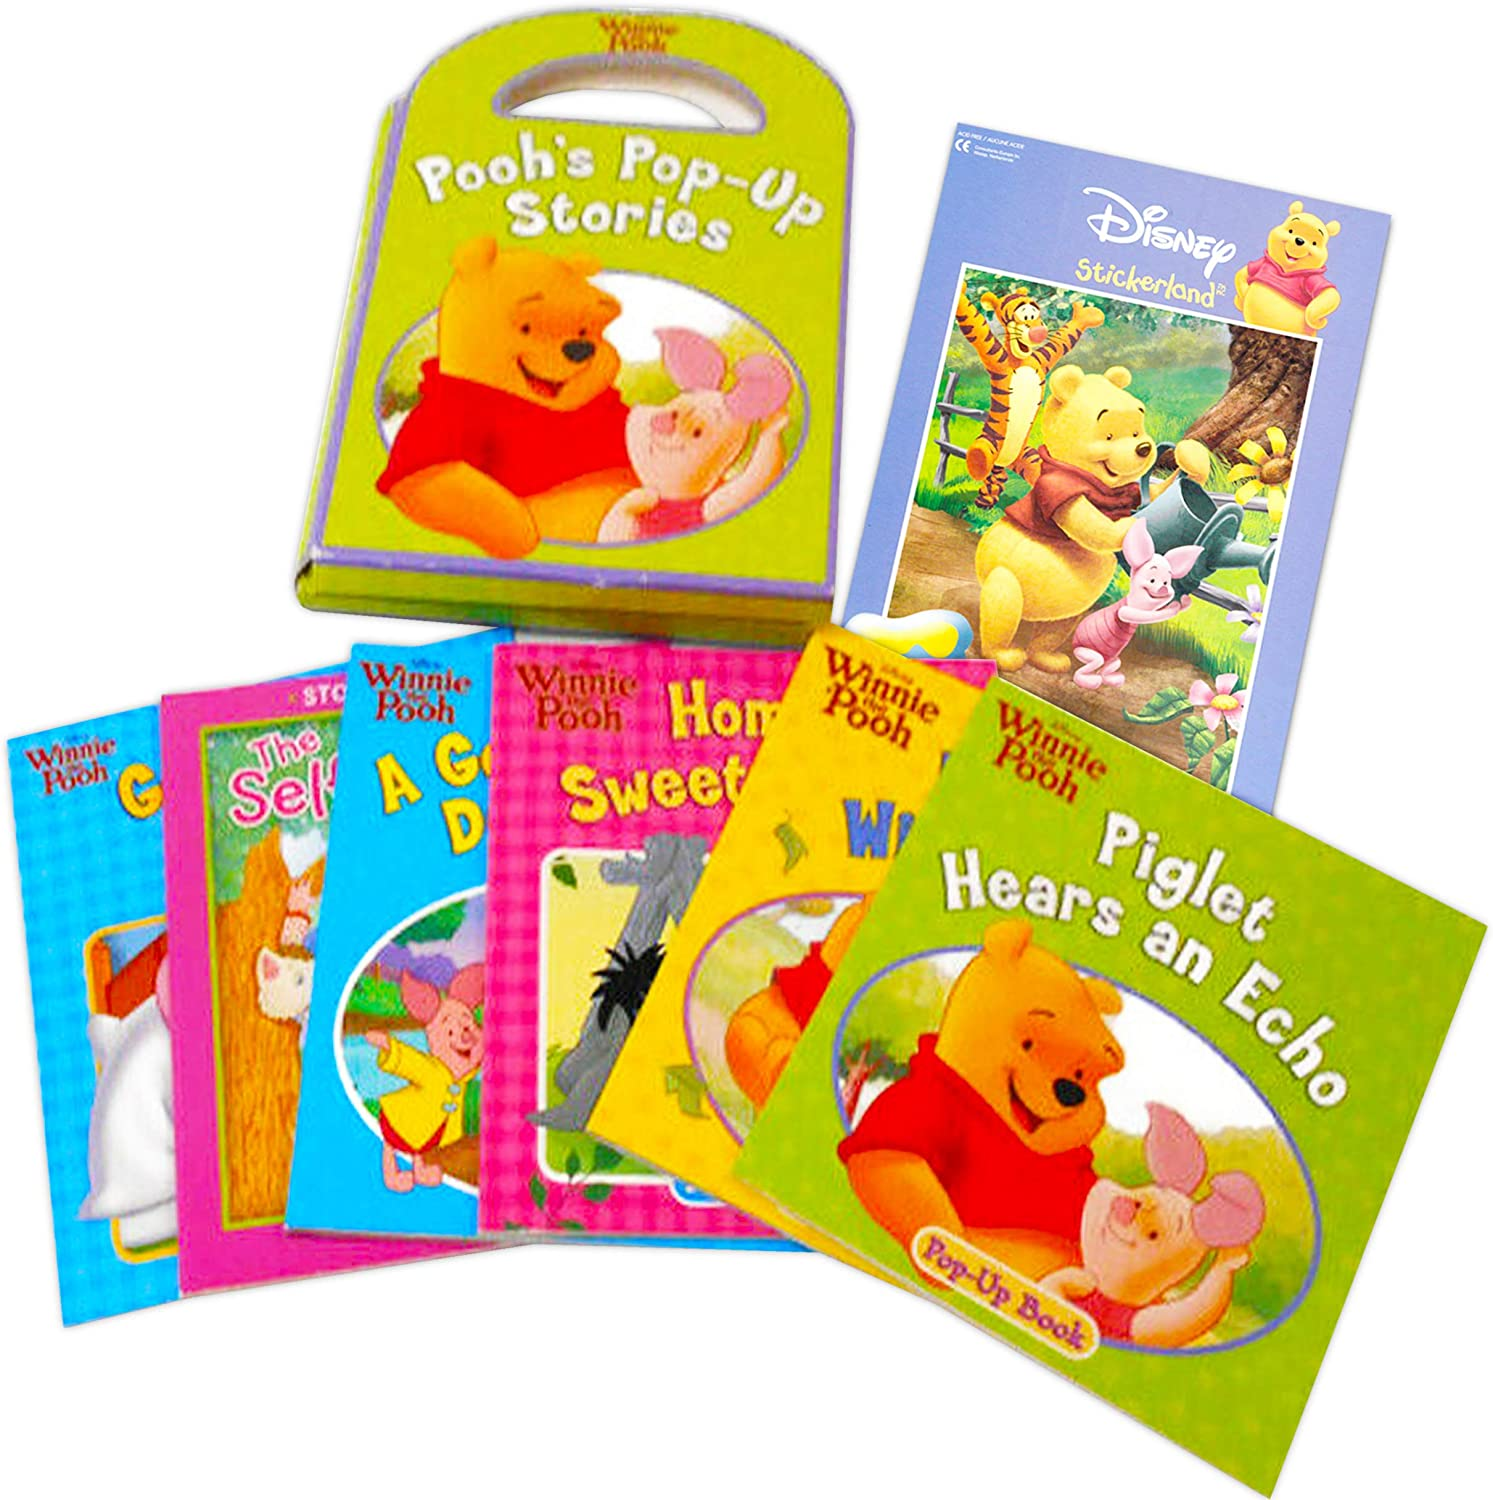 Disney Winnie The Pooh Pop Up Books Set Toddlers Babies Bundle ~ Pack of 6 Pooh Story Books with Stickers Winnie The Pooh Books for Infants